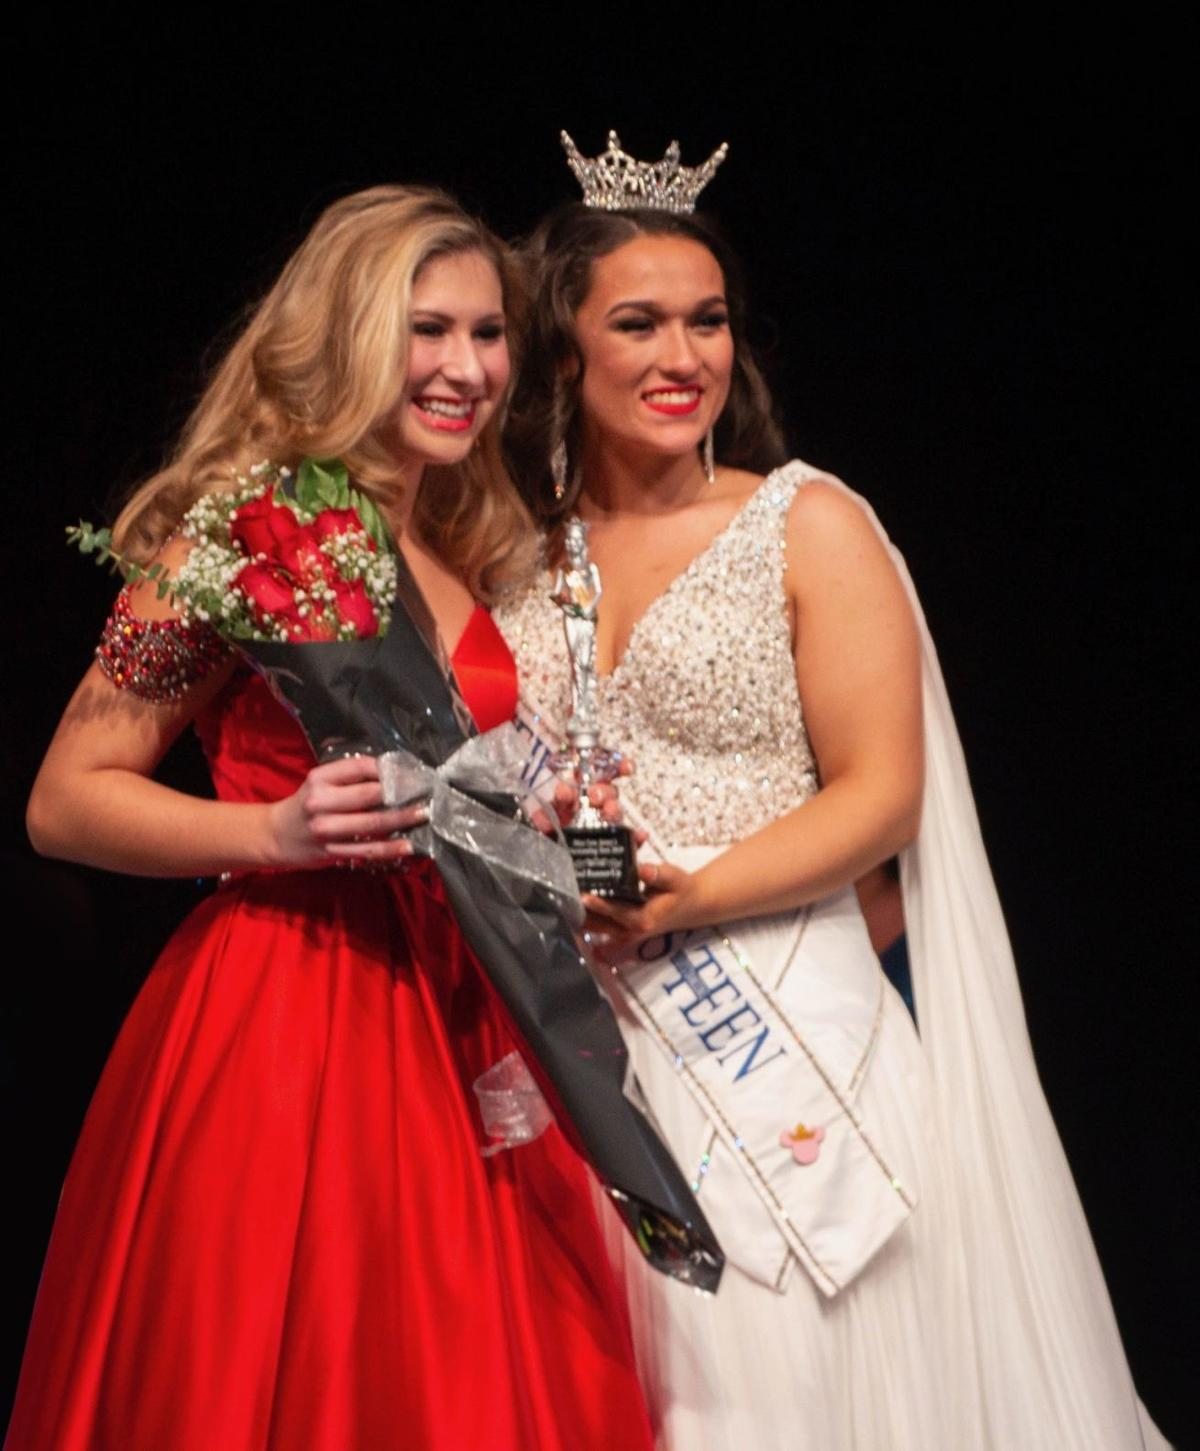 Tewksbury teen places top 3 in Miss New Jersey Outstanding Teen Pageant